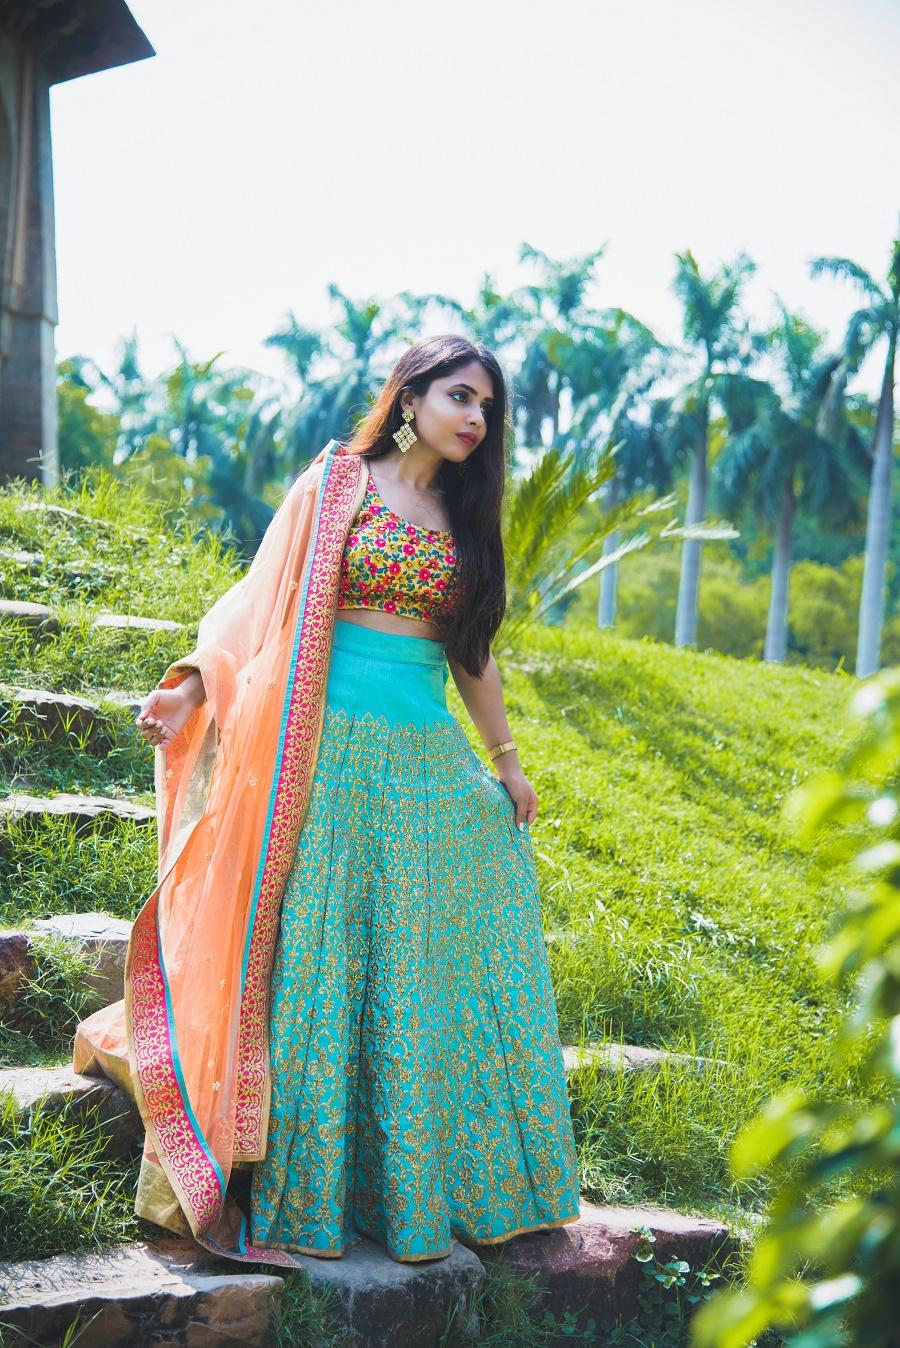 Indian Wedding Lookbook: Where To Buy Ethnic Women Clothes ...